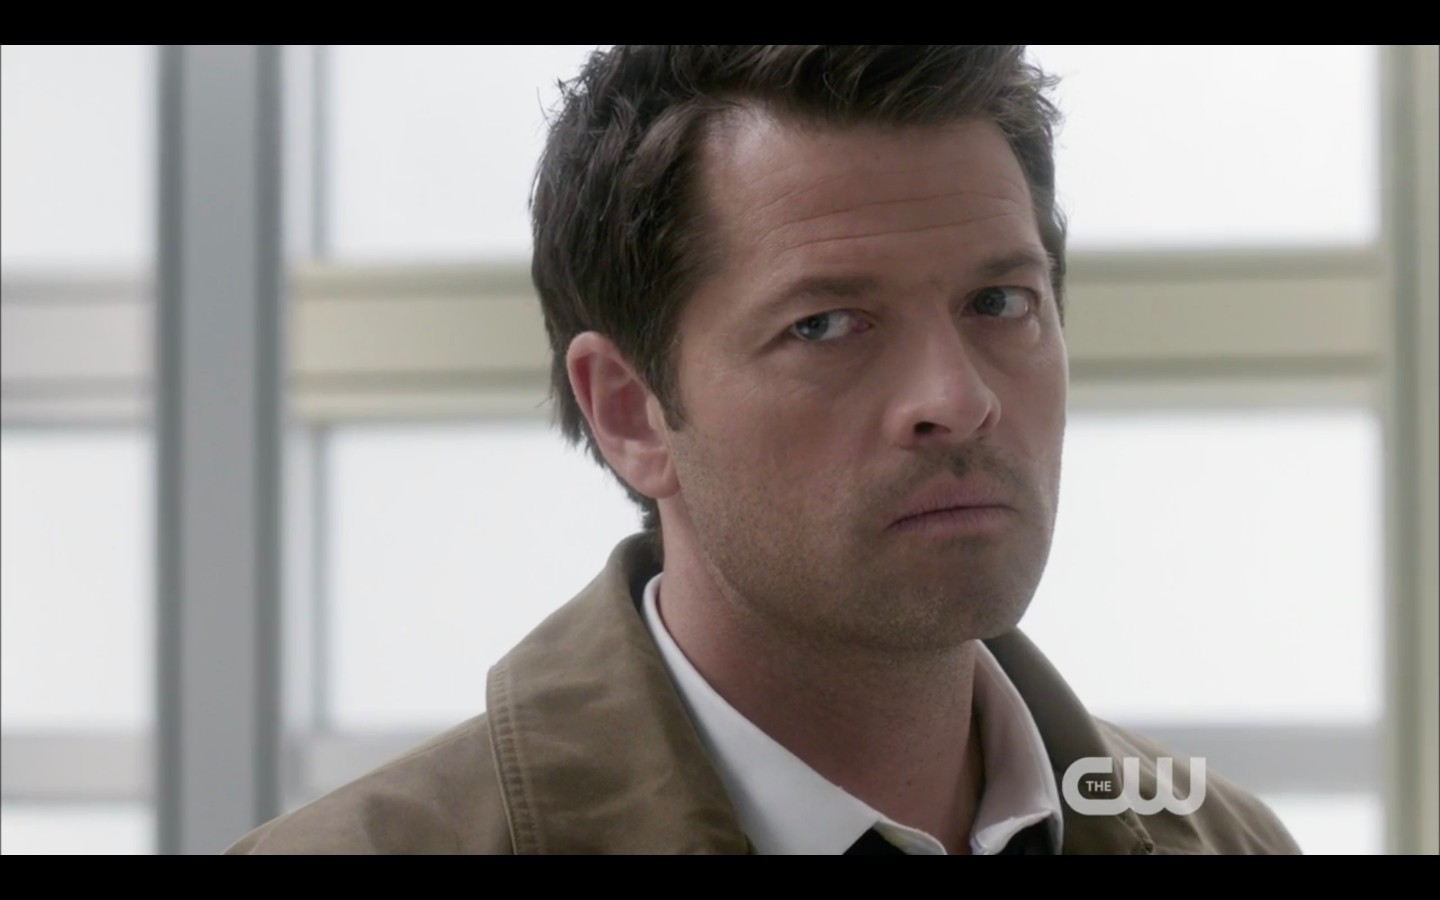 castiel surprise to see duman in supernatural heaven